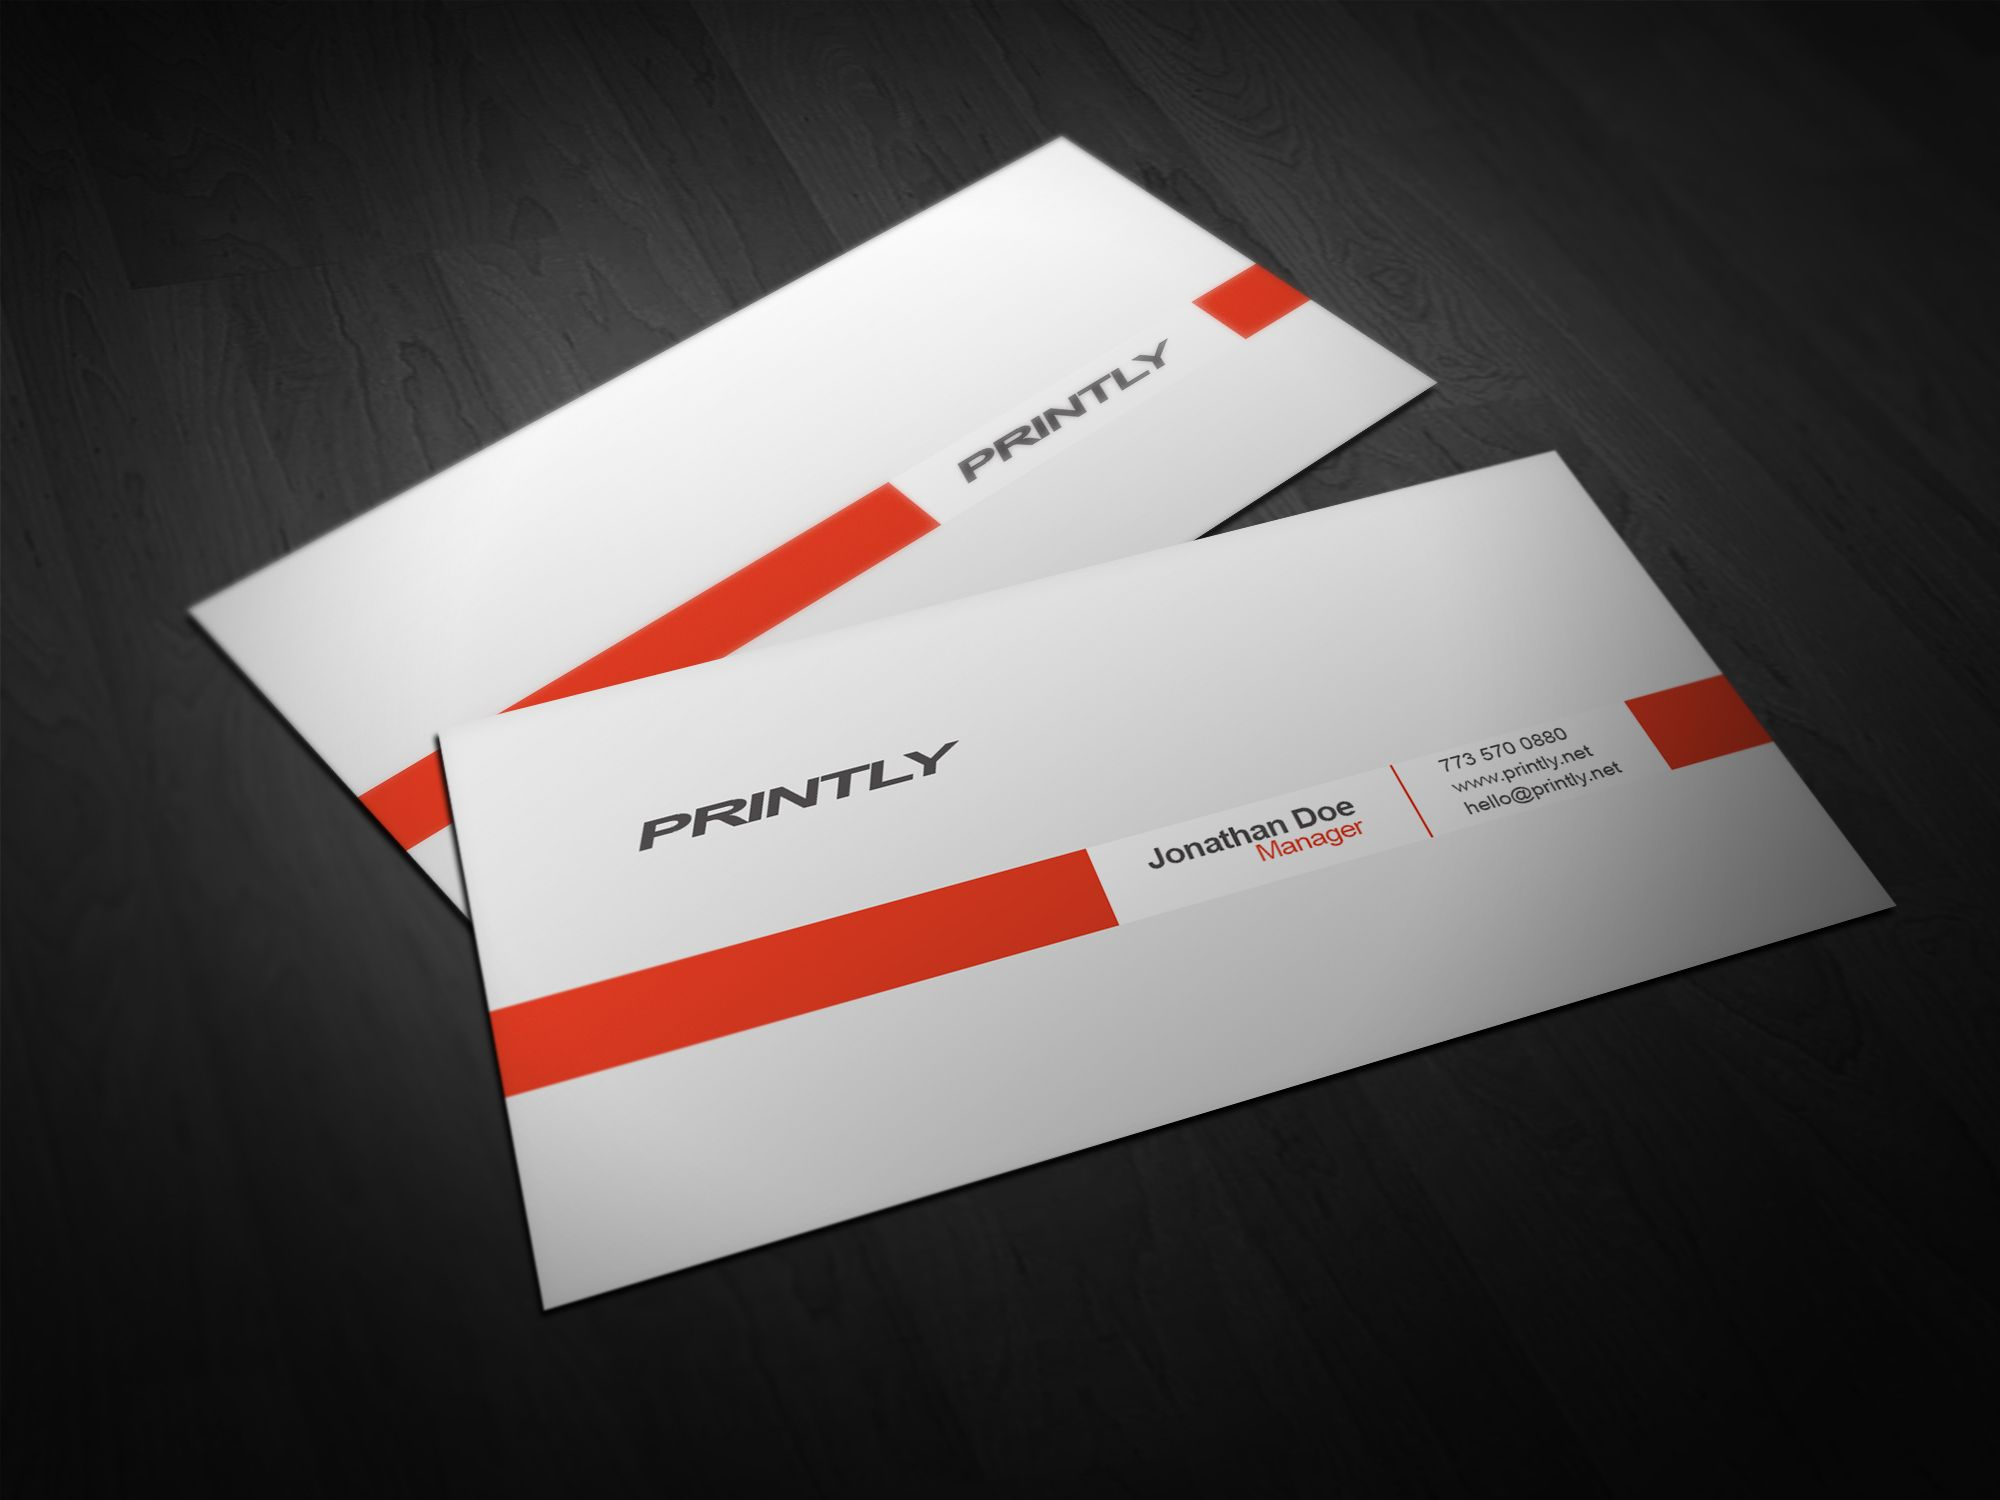 Free Printly PSD Business Card Template PRINTLY Design - Free online business card template